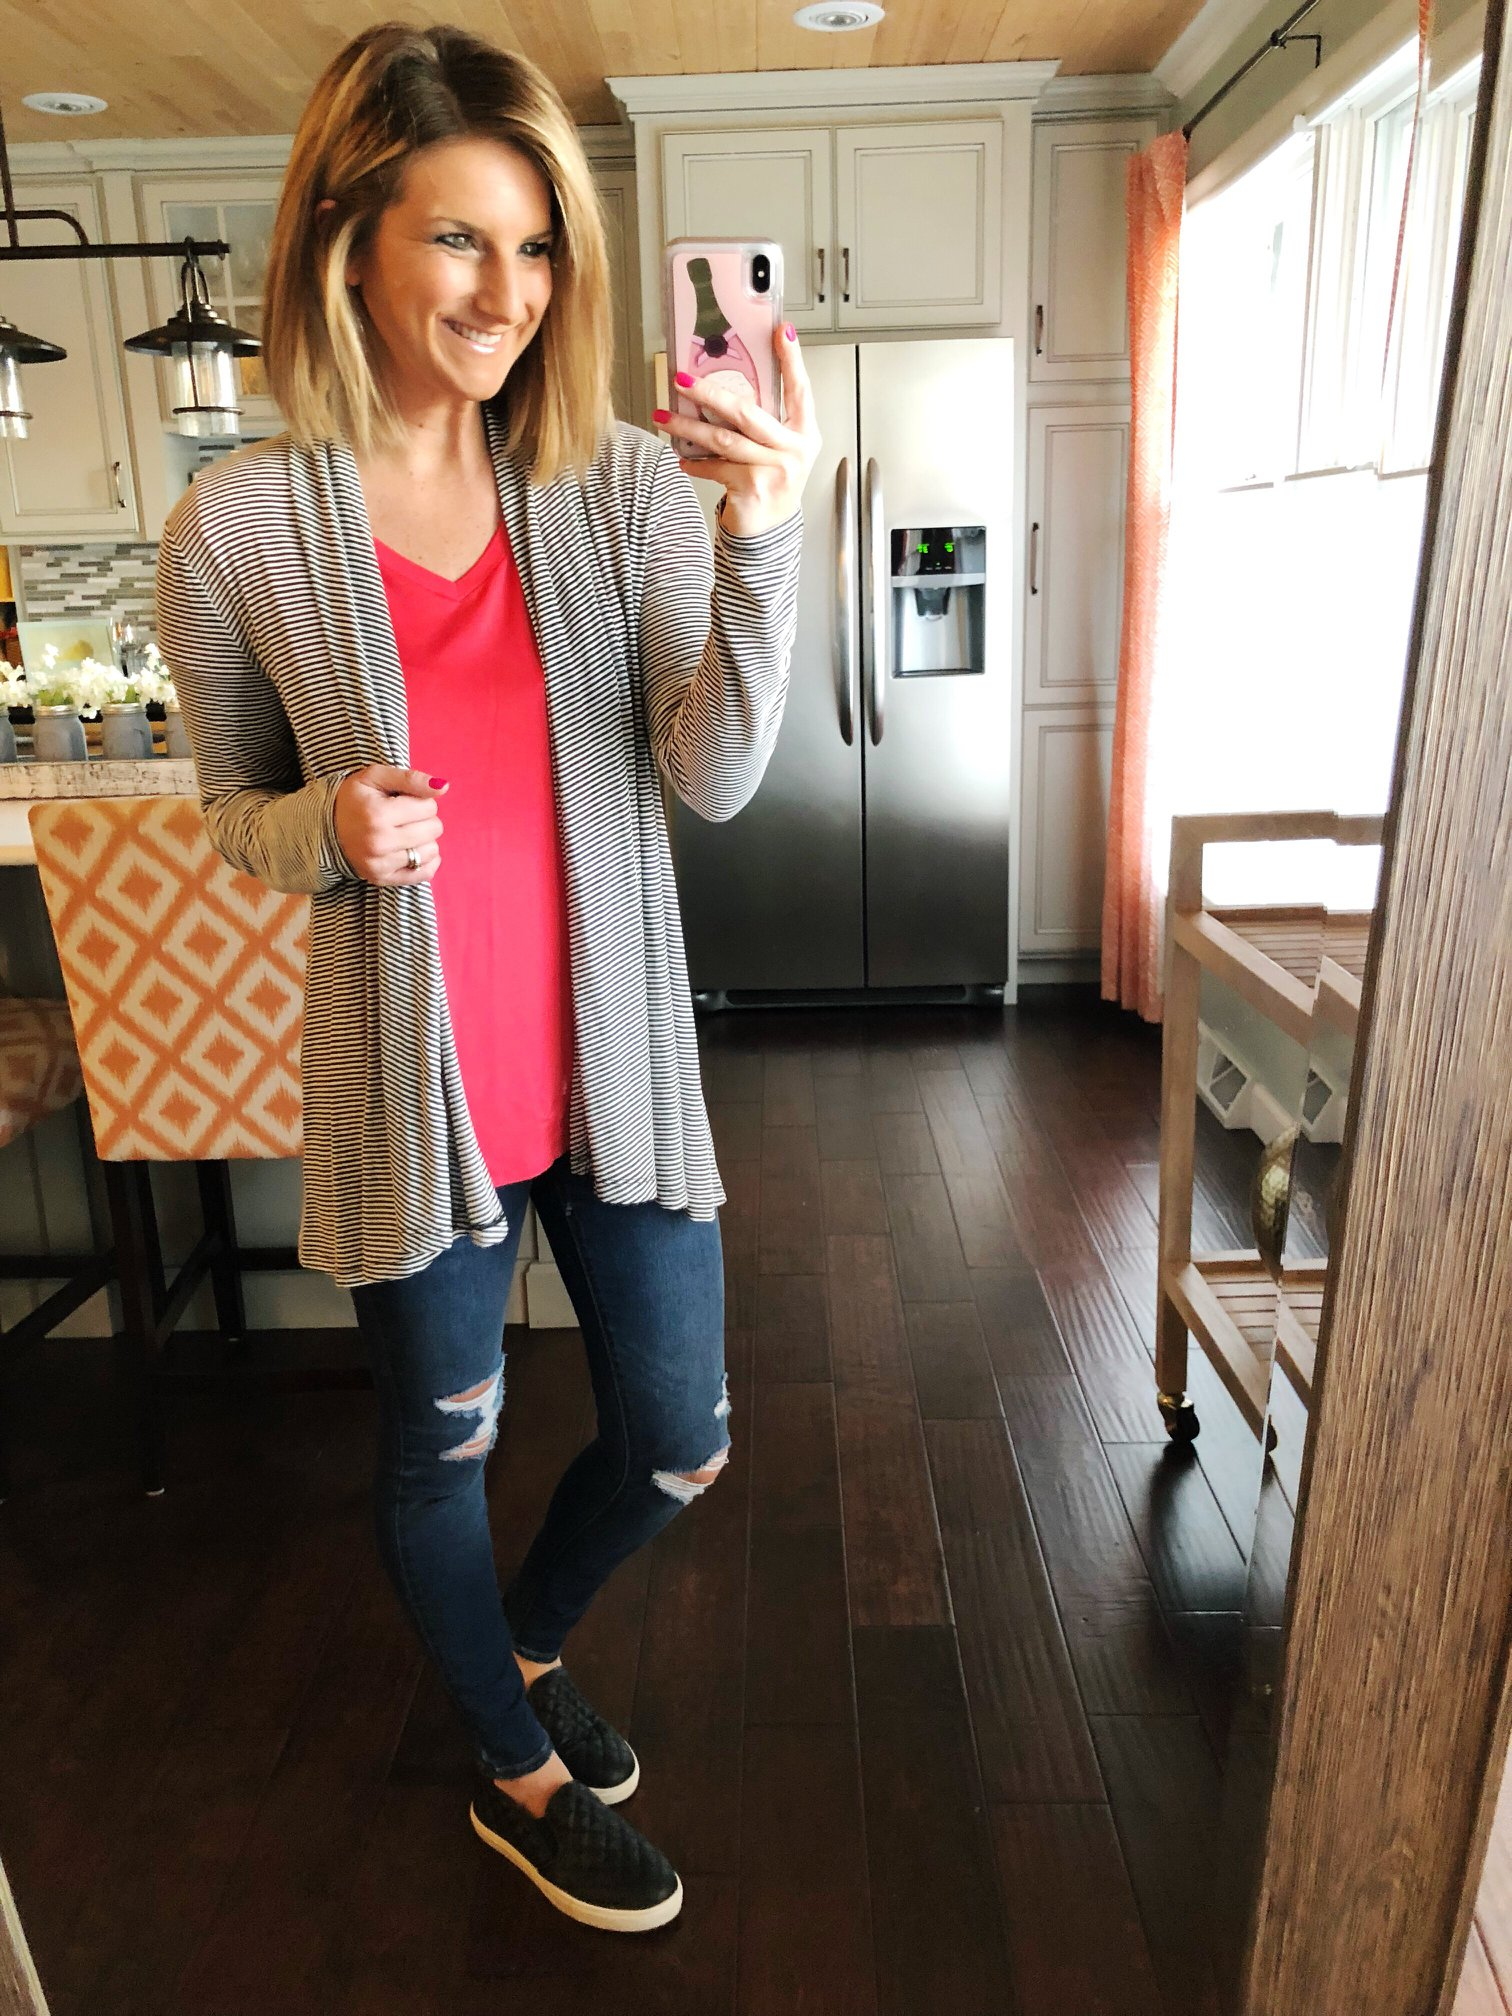 How to Style Pull On Jeans // V Neck Top + Pull On Destructed Jeans + Lightweight Cardigan + Slip On Sneakers // Spring Outfit